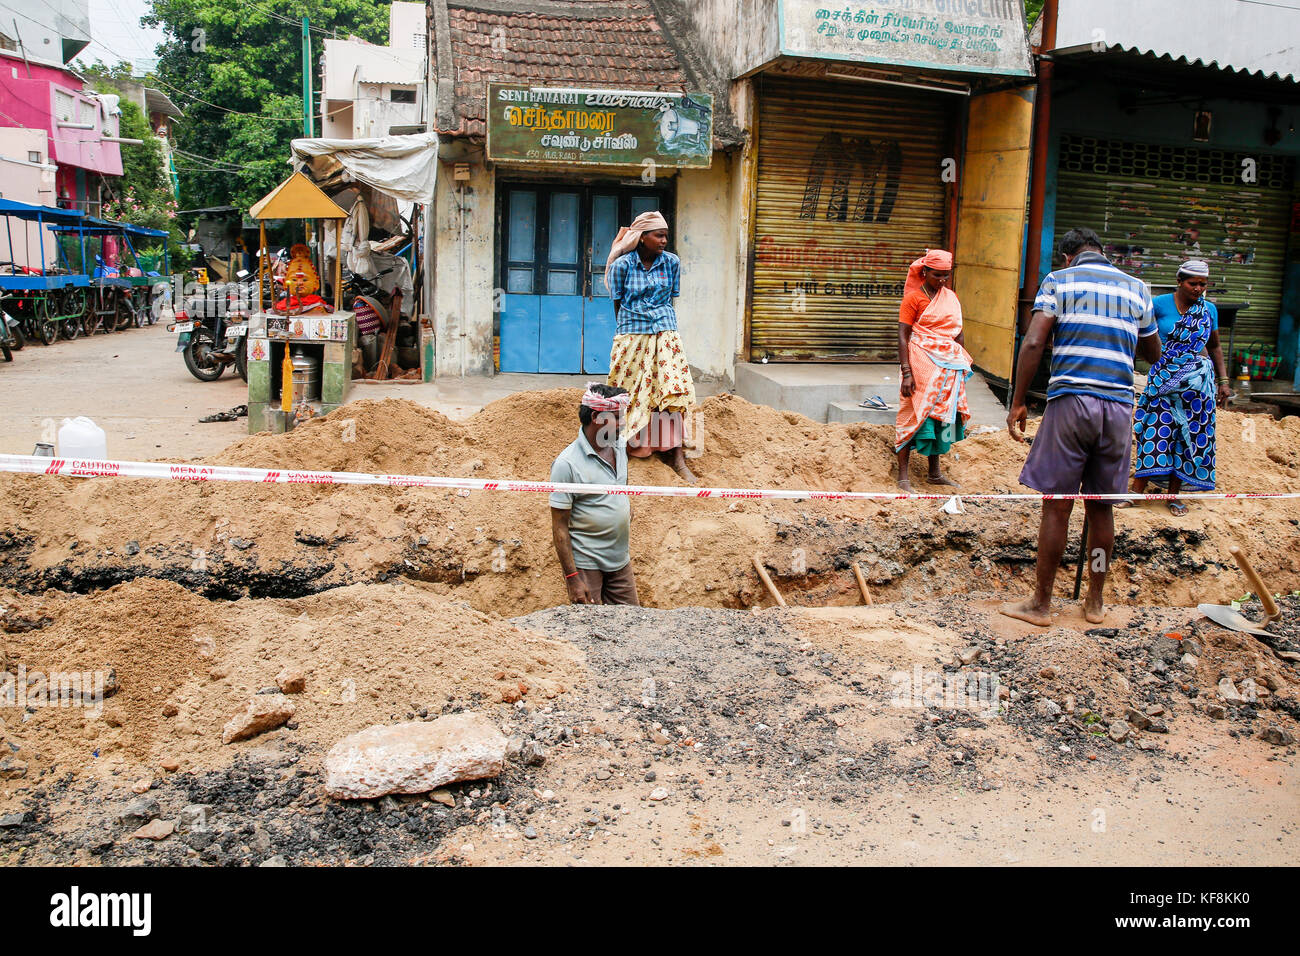 PONDICHERY, PUDUCHERY, INDIA - SEPTEMBER 04, 2017. Unidentified workers with shovels in a trench, dig trenches along Stock Photo